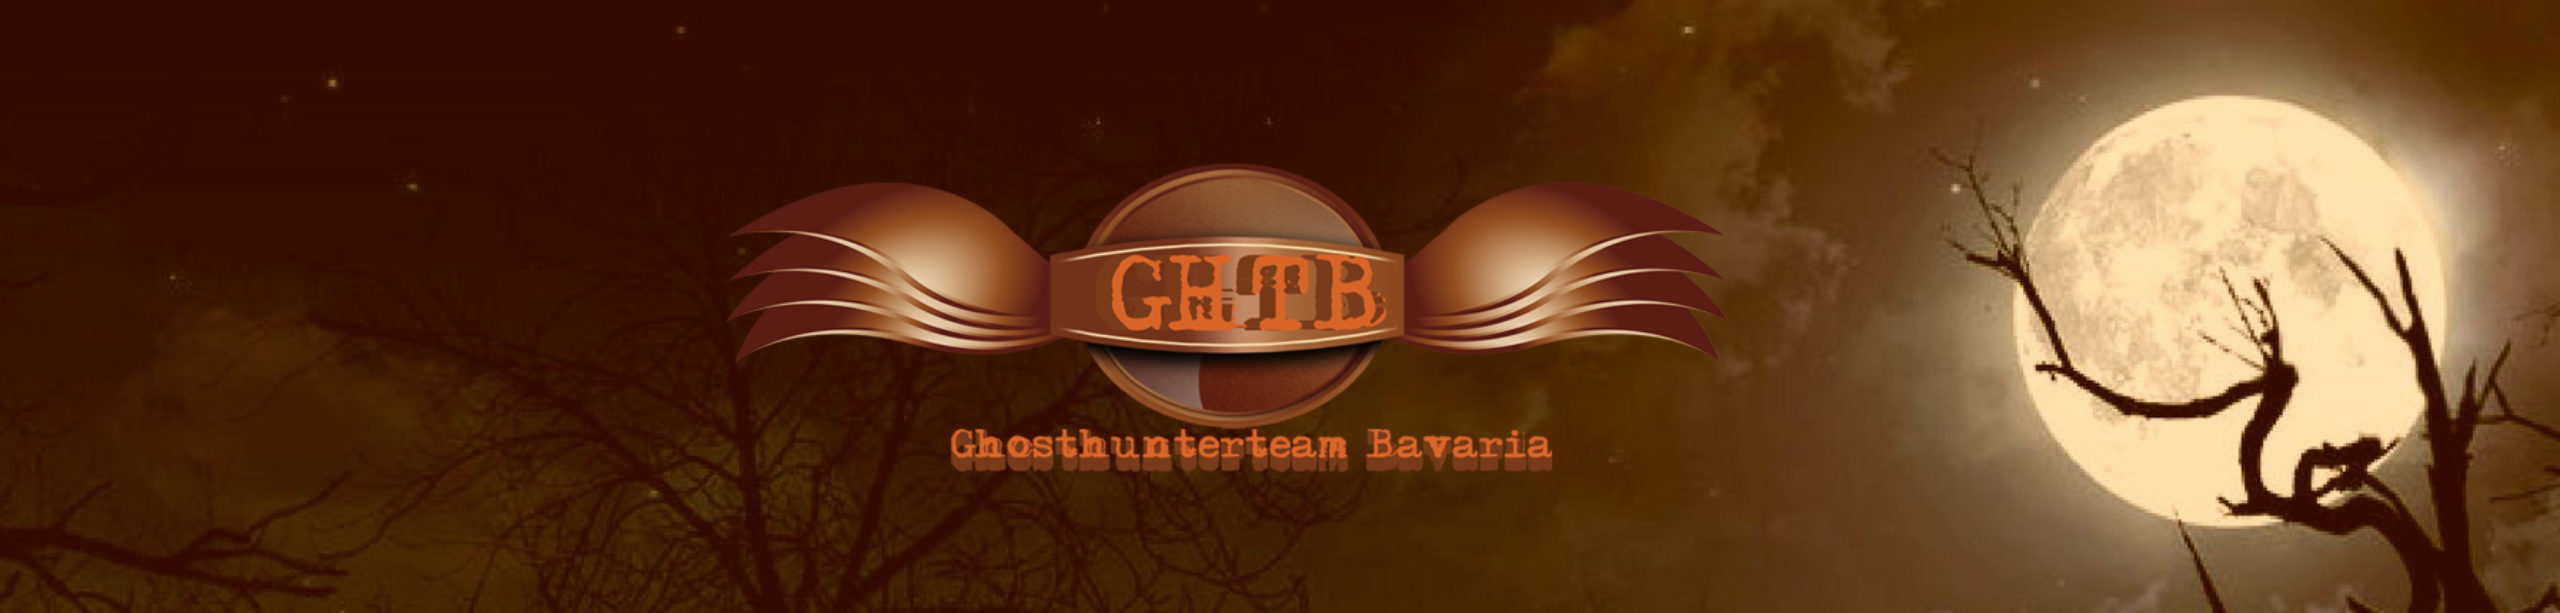 GhosthunterteamBavaria